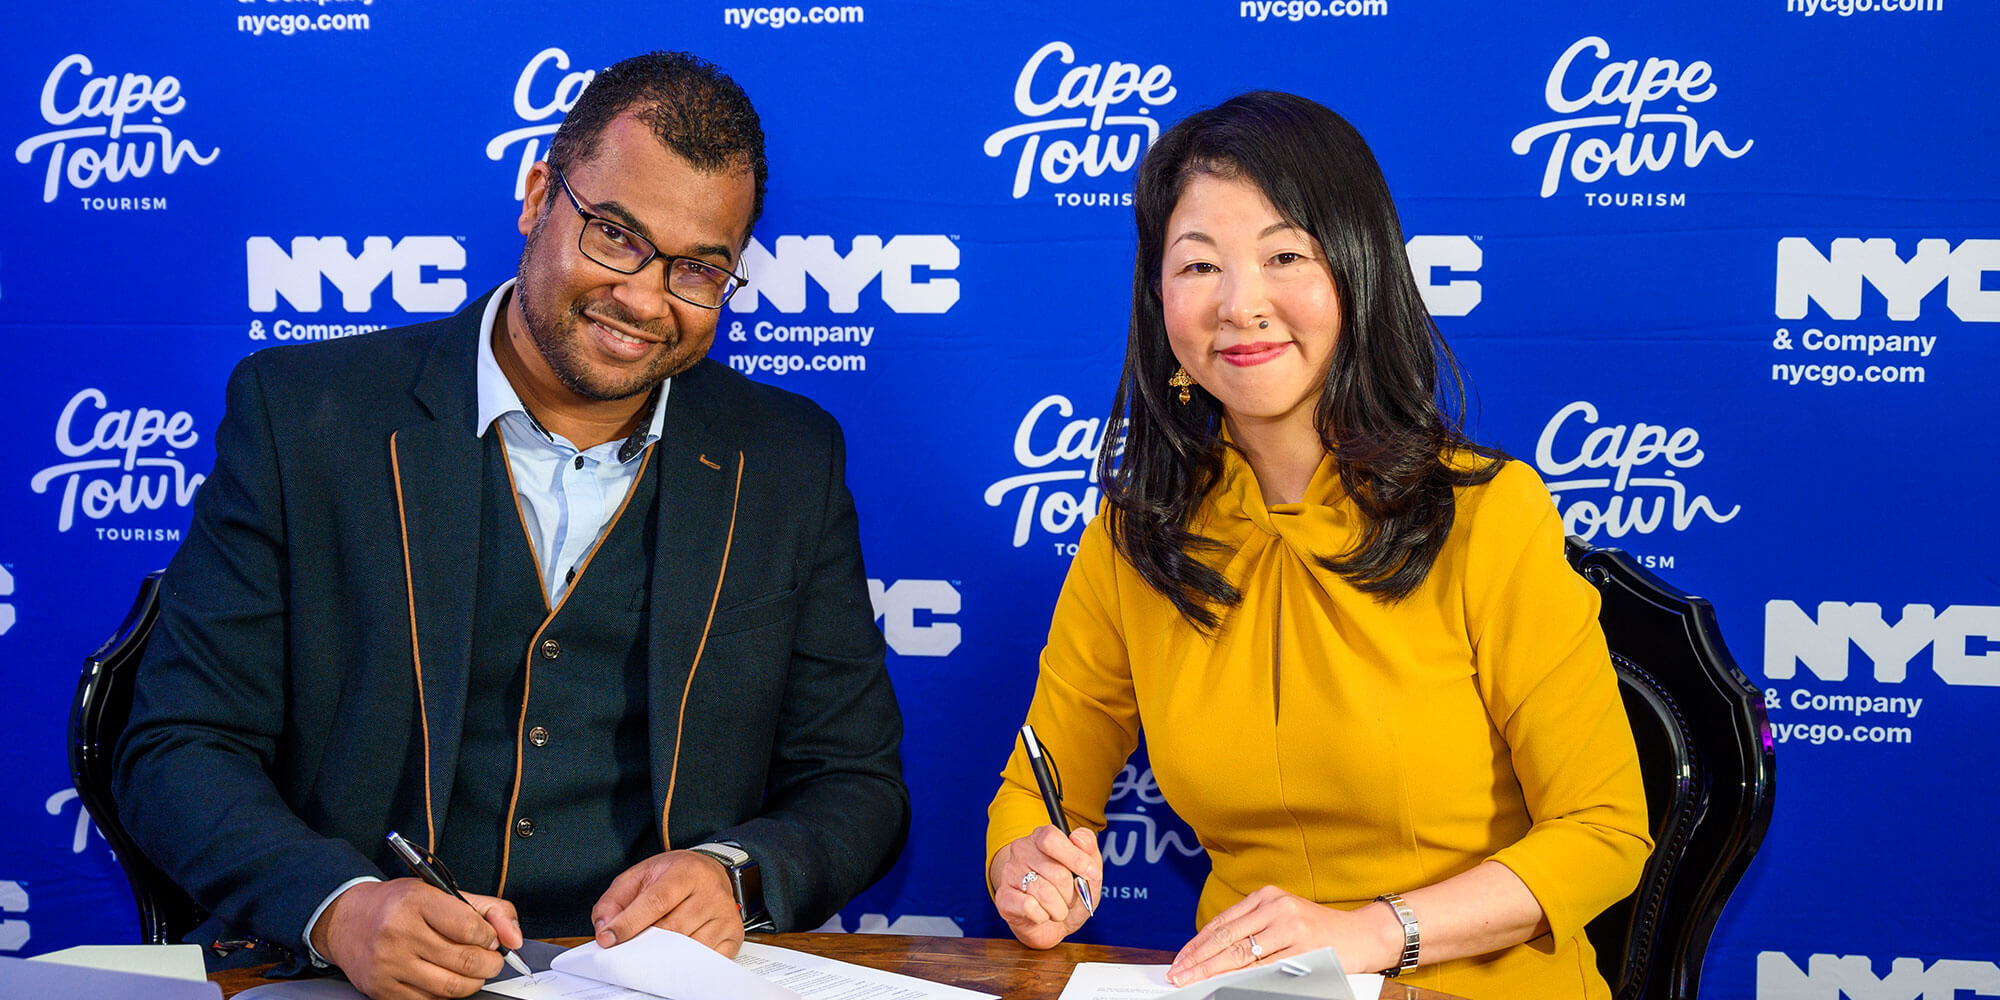 Enver-Duminy-of-Cape-Town-Tourism-&-Makiko-Matsuda-Healy-of-NYC-&-Company (1)